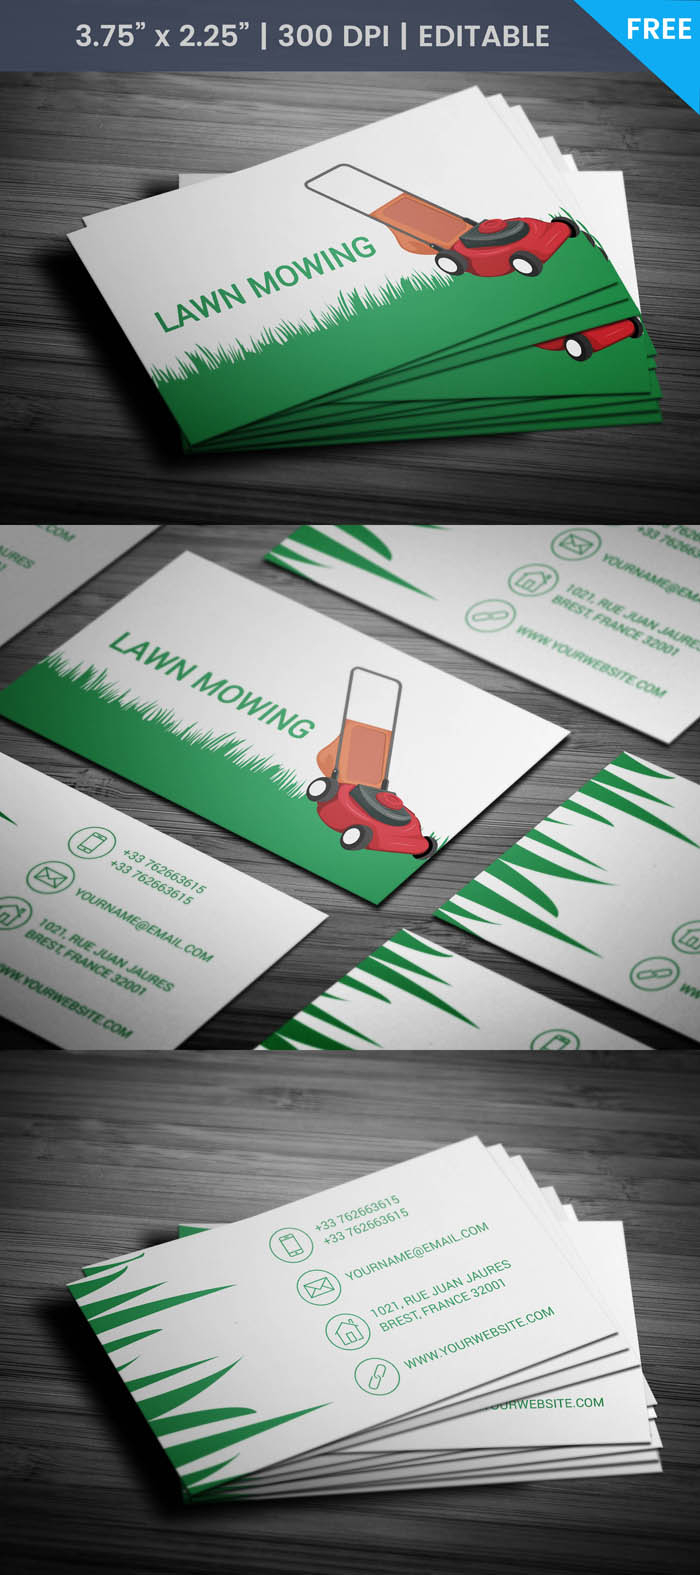 Free Lawn Care Business Card Throughout Lawn Care Business Cards Templates Free